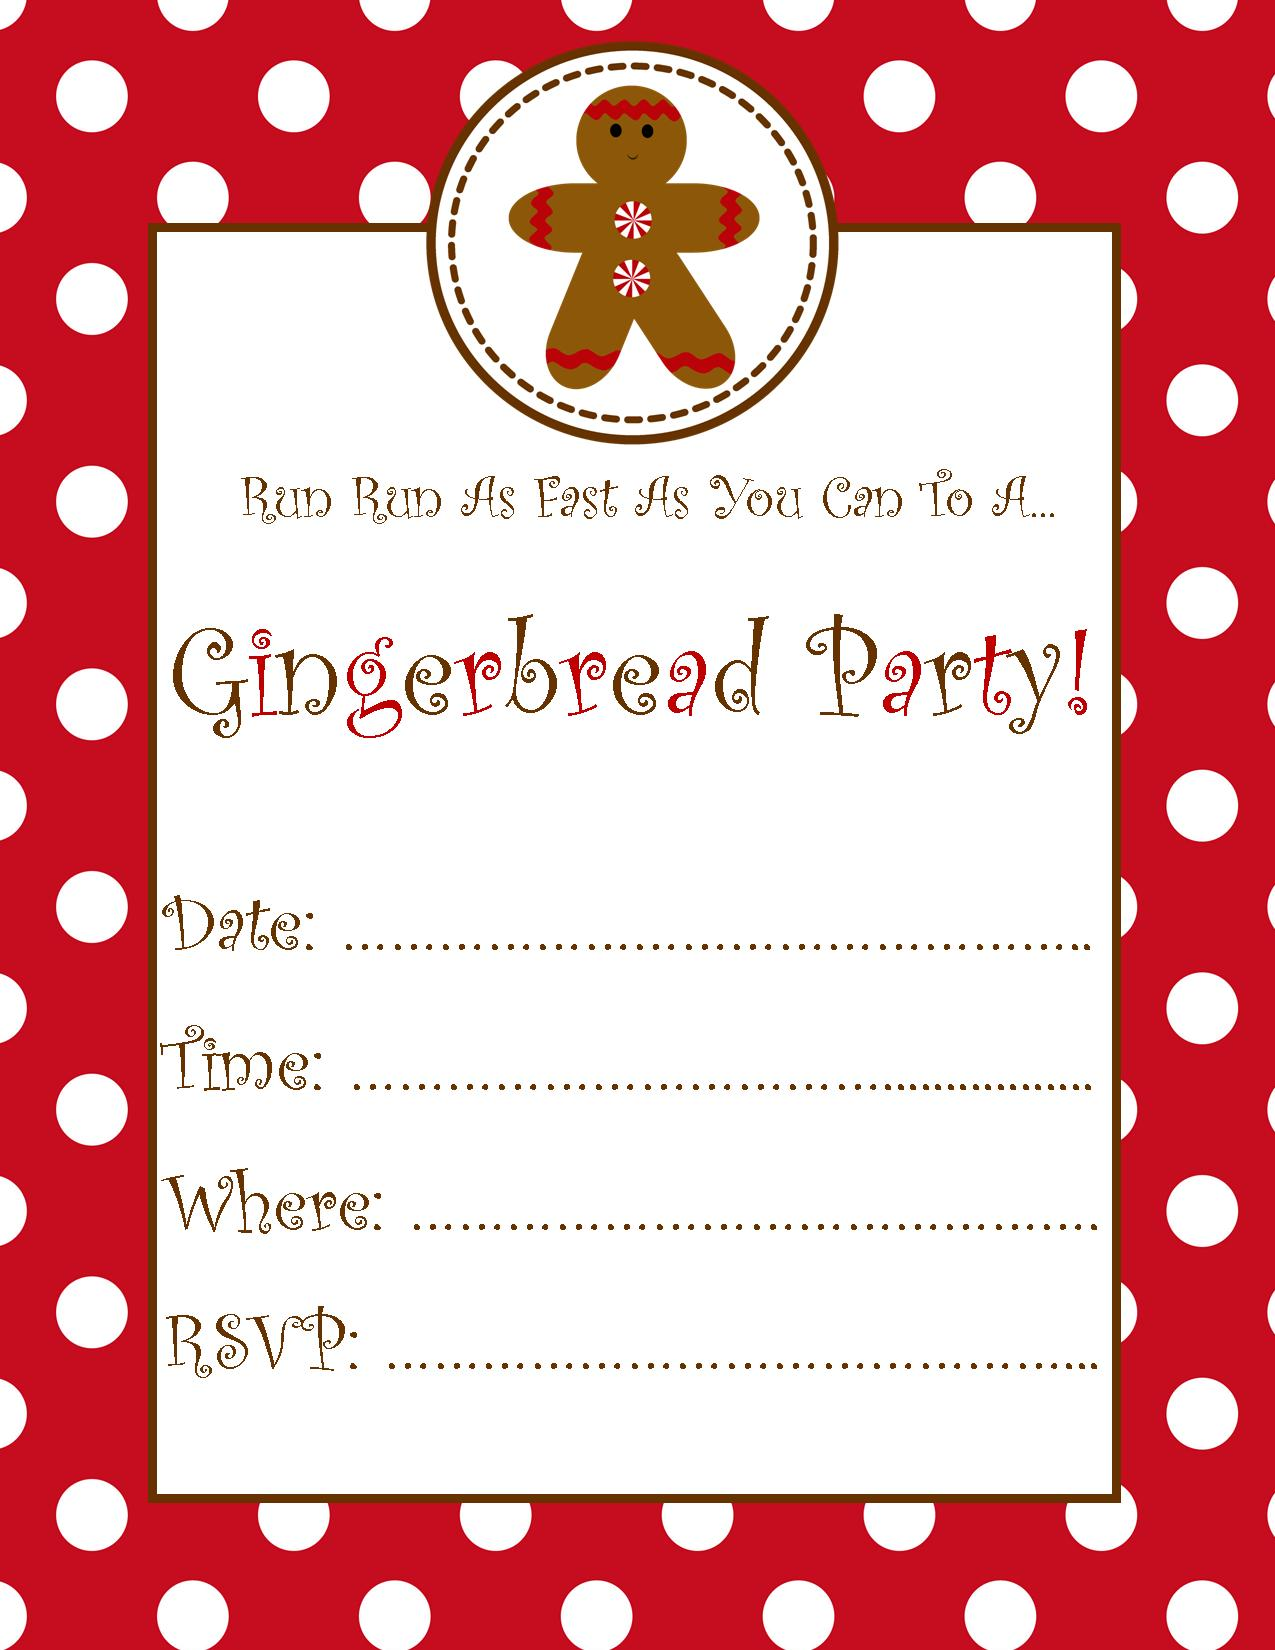 Free Gingerbread Party Invitation SchoolgirlStyle – Gingerbread Party Invitations